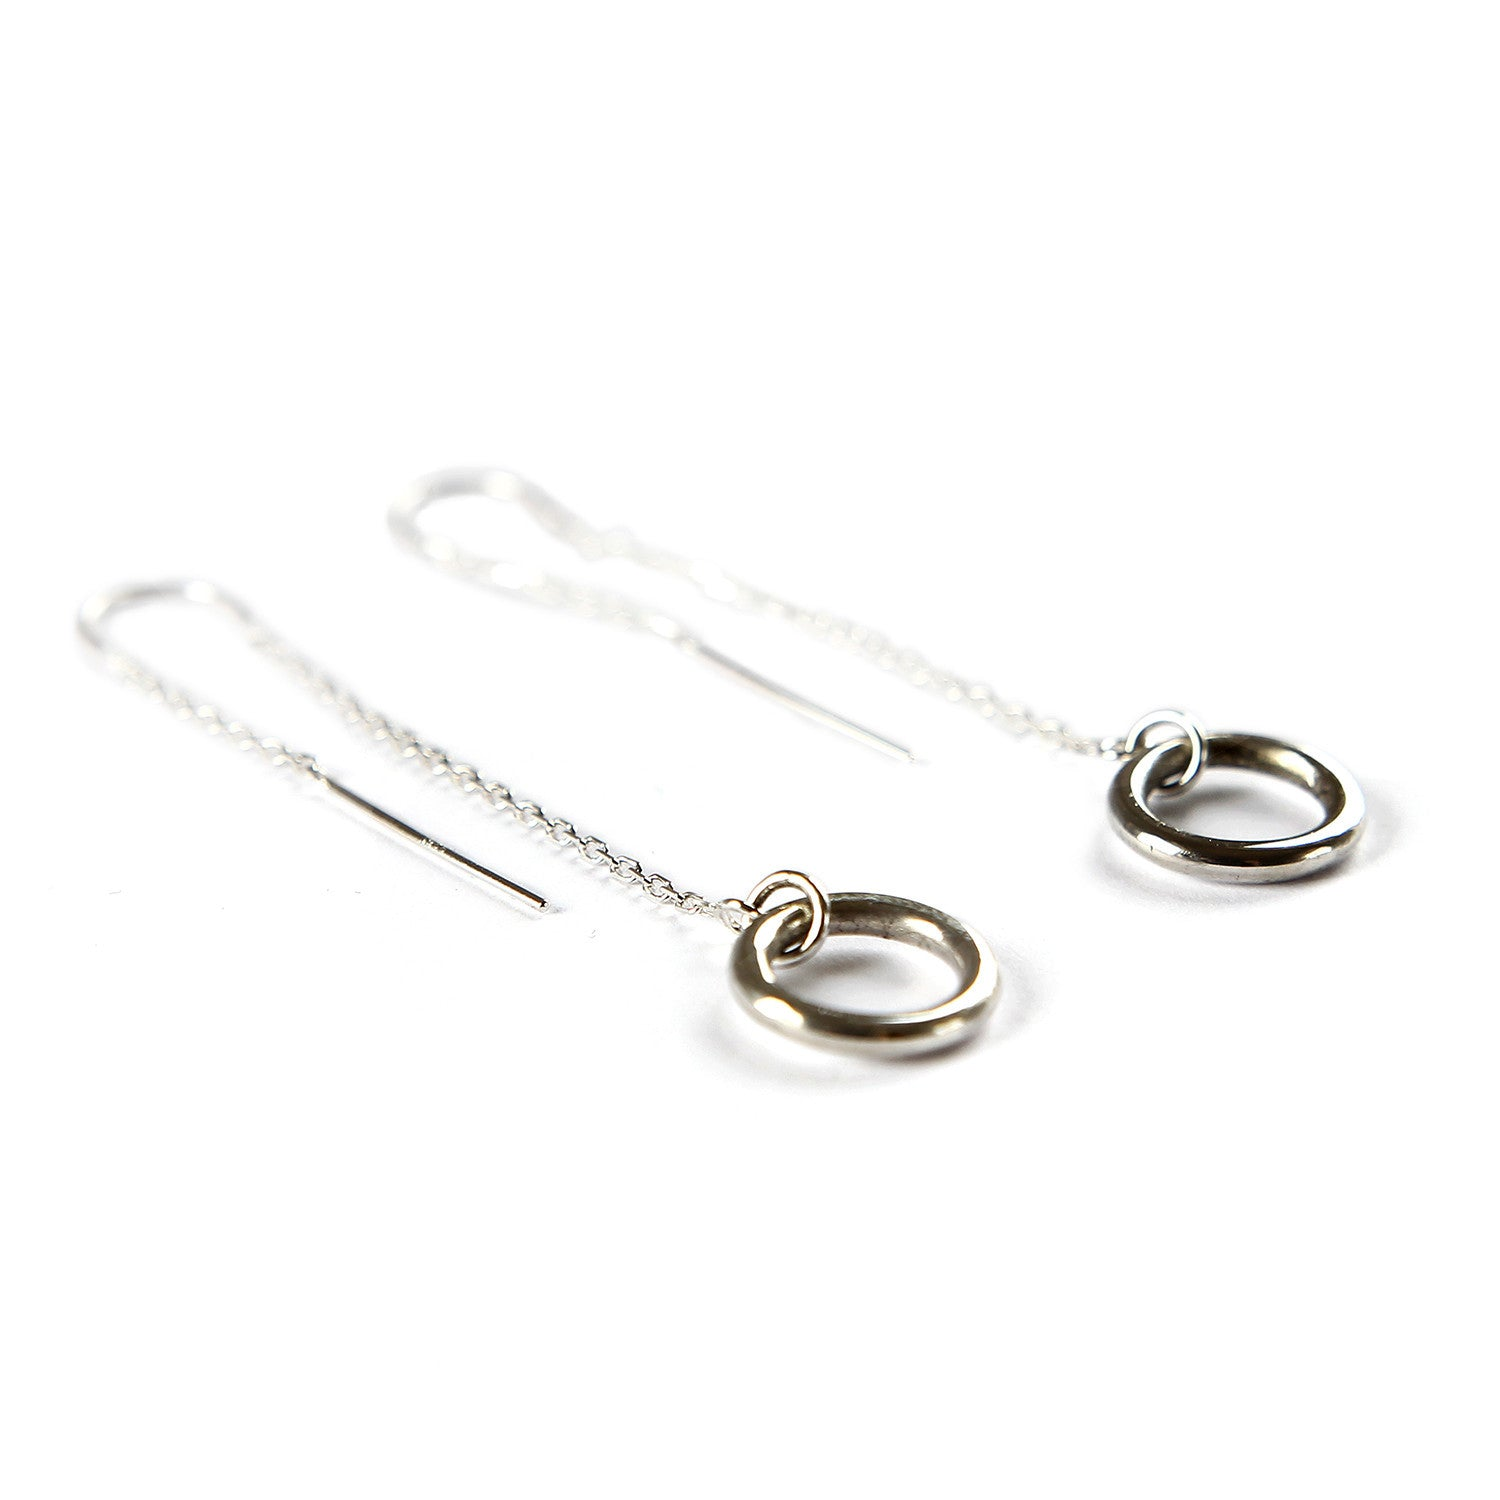 The Circle Dangle earrings from Brash Bijoux - the go to everyday earring with an edge